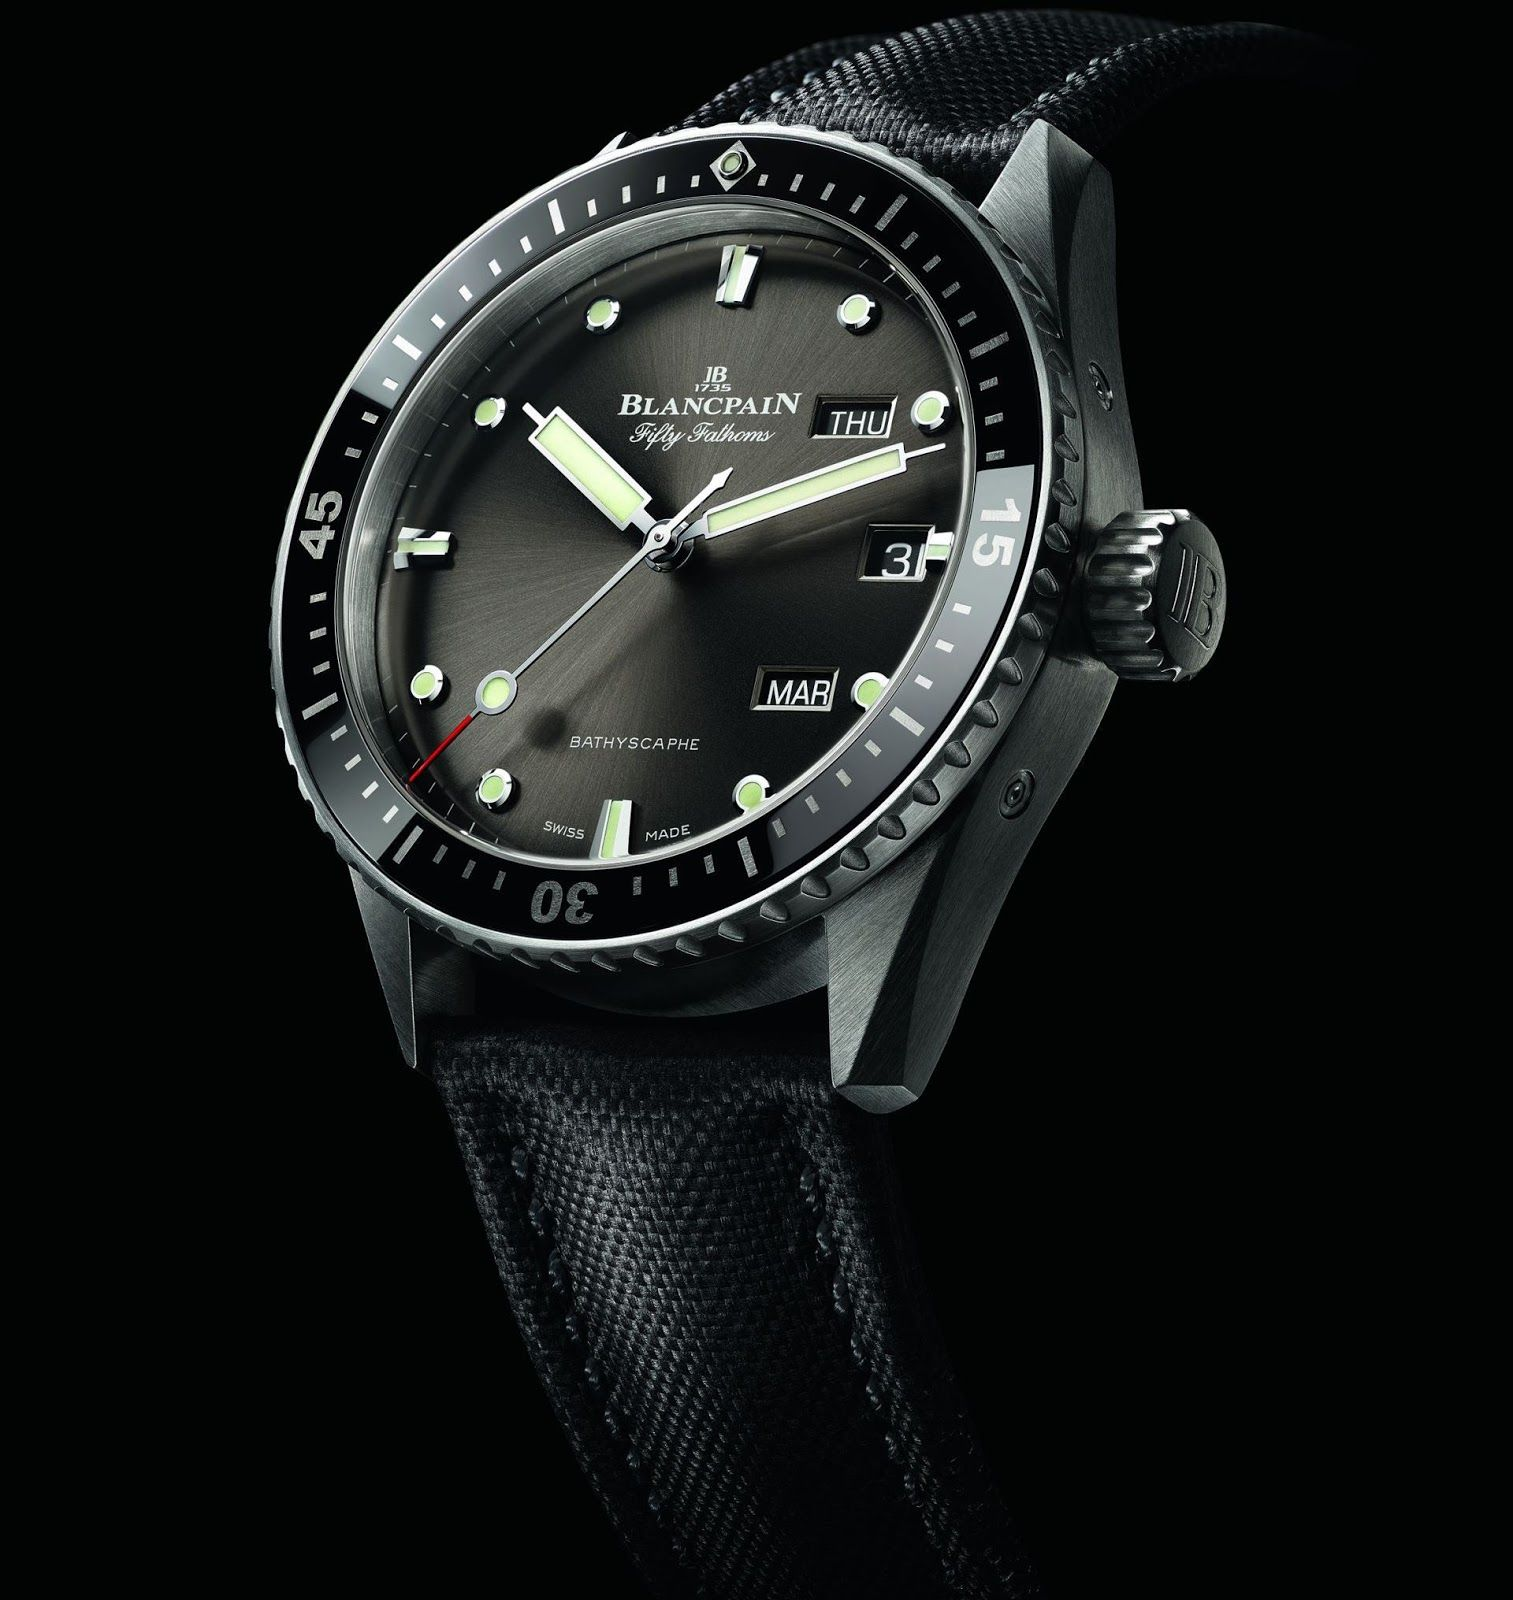 Blancpain Fifty Fathoms Bathyscaphe Quantieme Annuel Ref 5071 1110 B52a Fifty Fathoms Dive Watches Blancpain